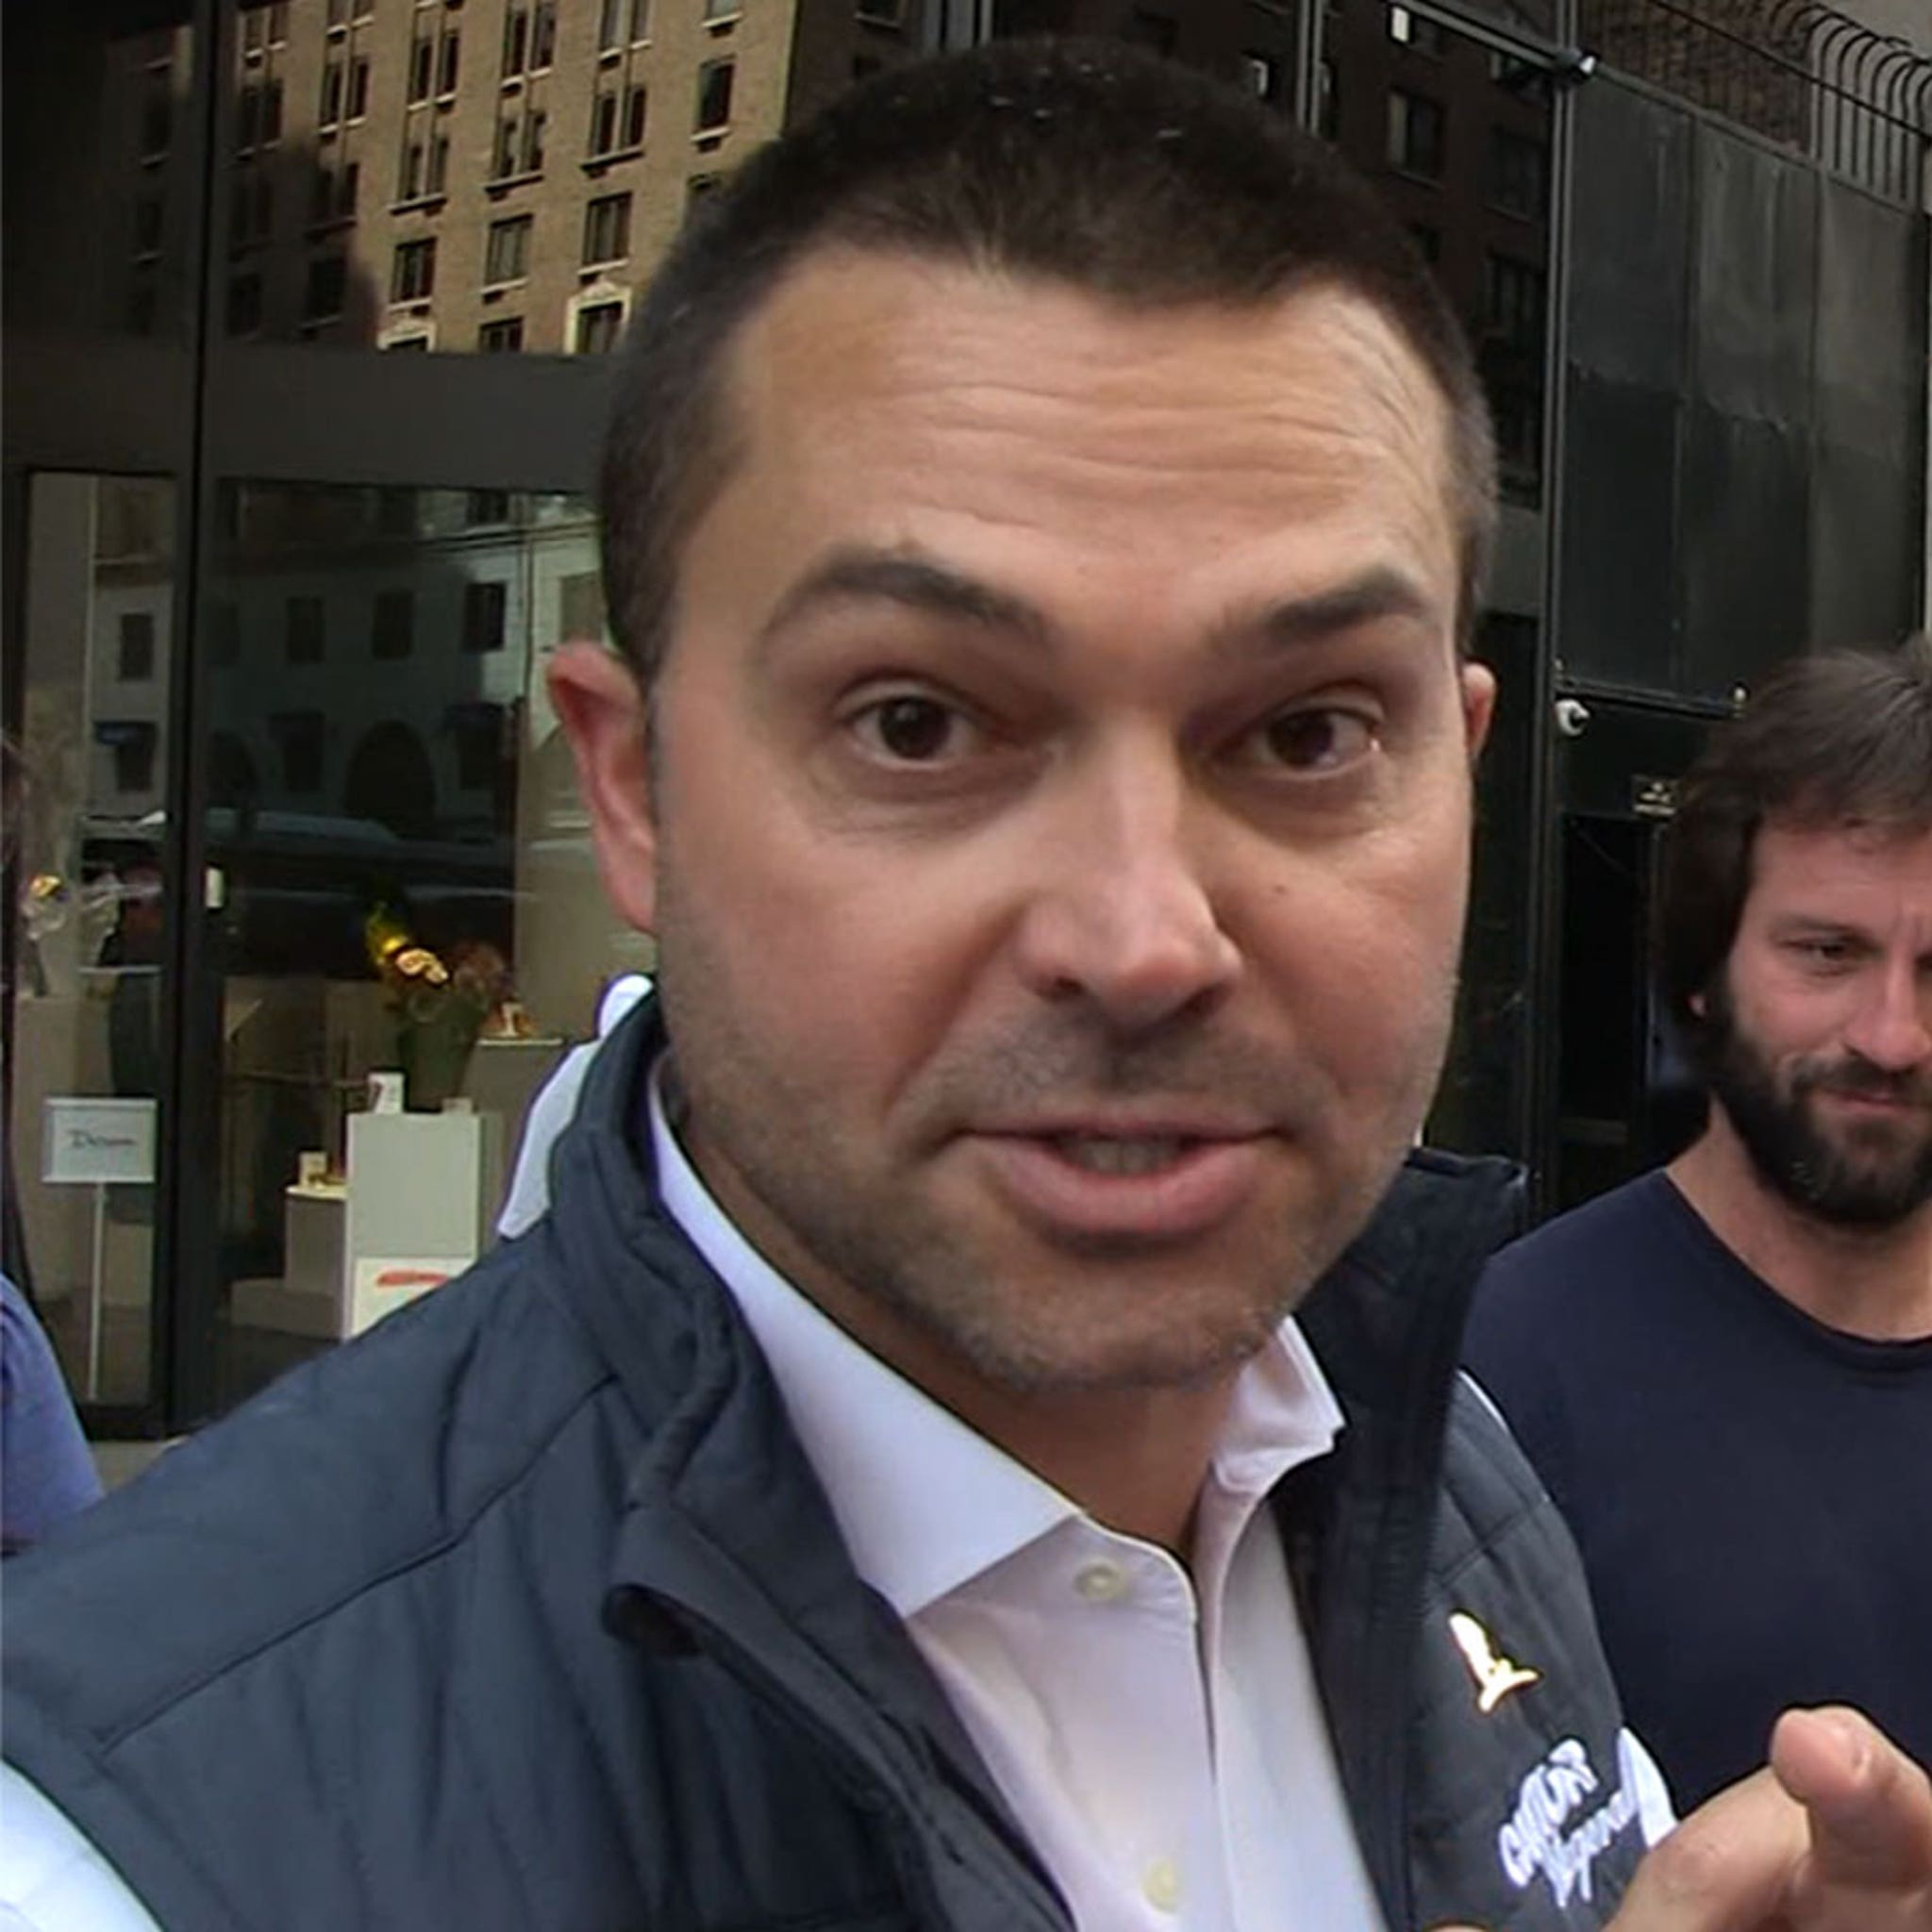 Nick Swisher Bummed Over Christian Yelich's Injury, Brewers Might Be Done